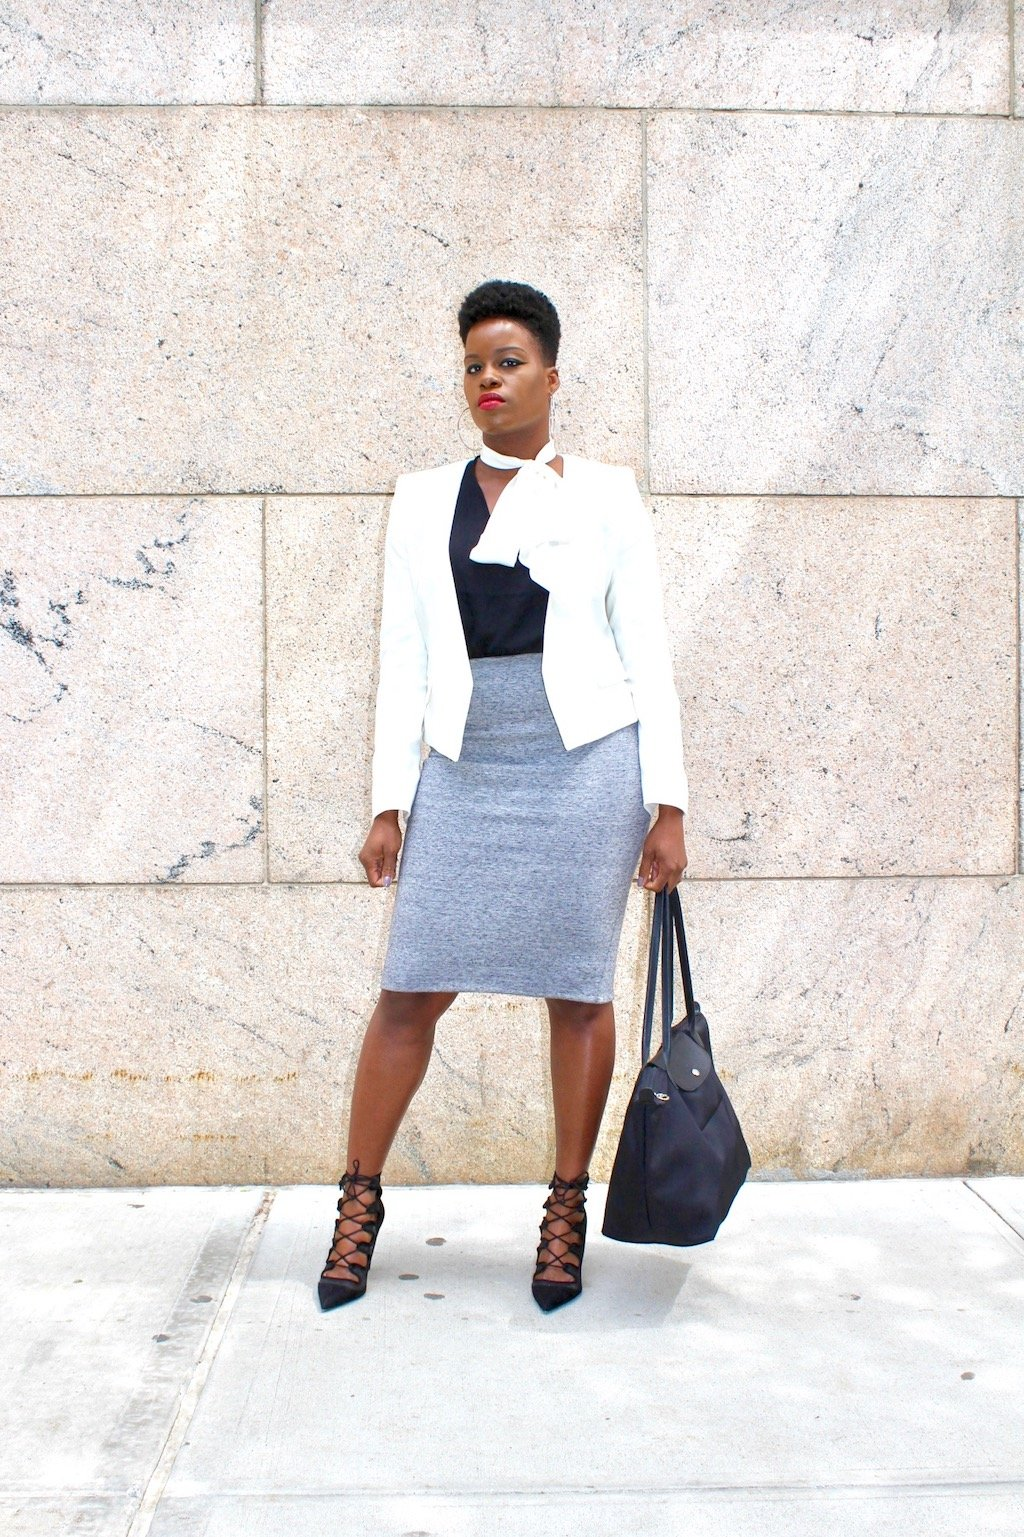 Skinny Scar with blazer and pencil skirt oufit